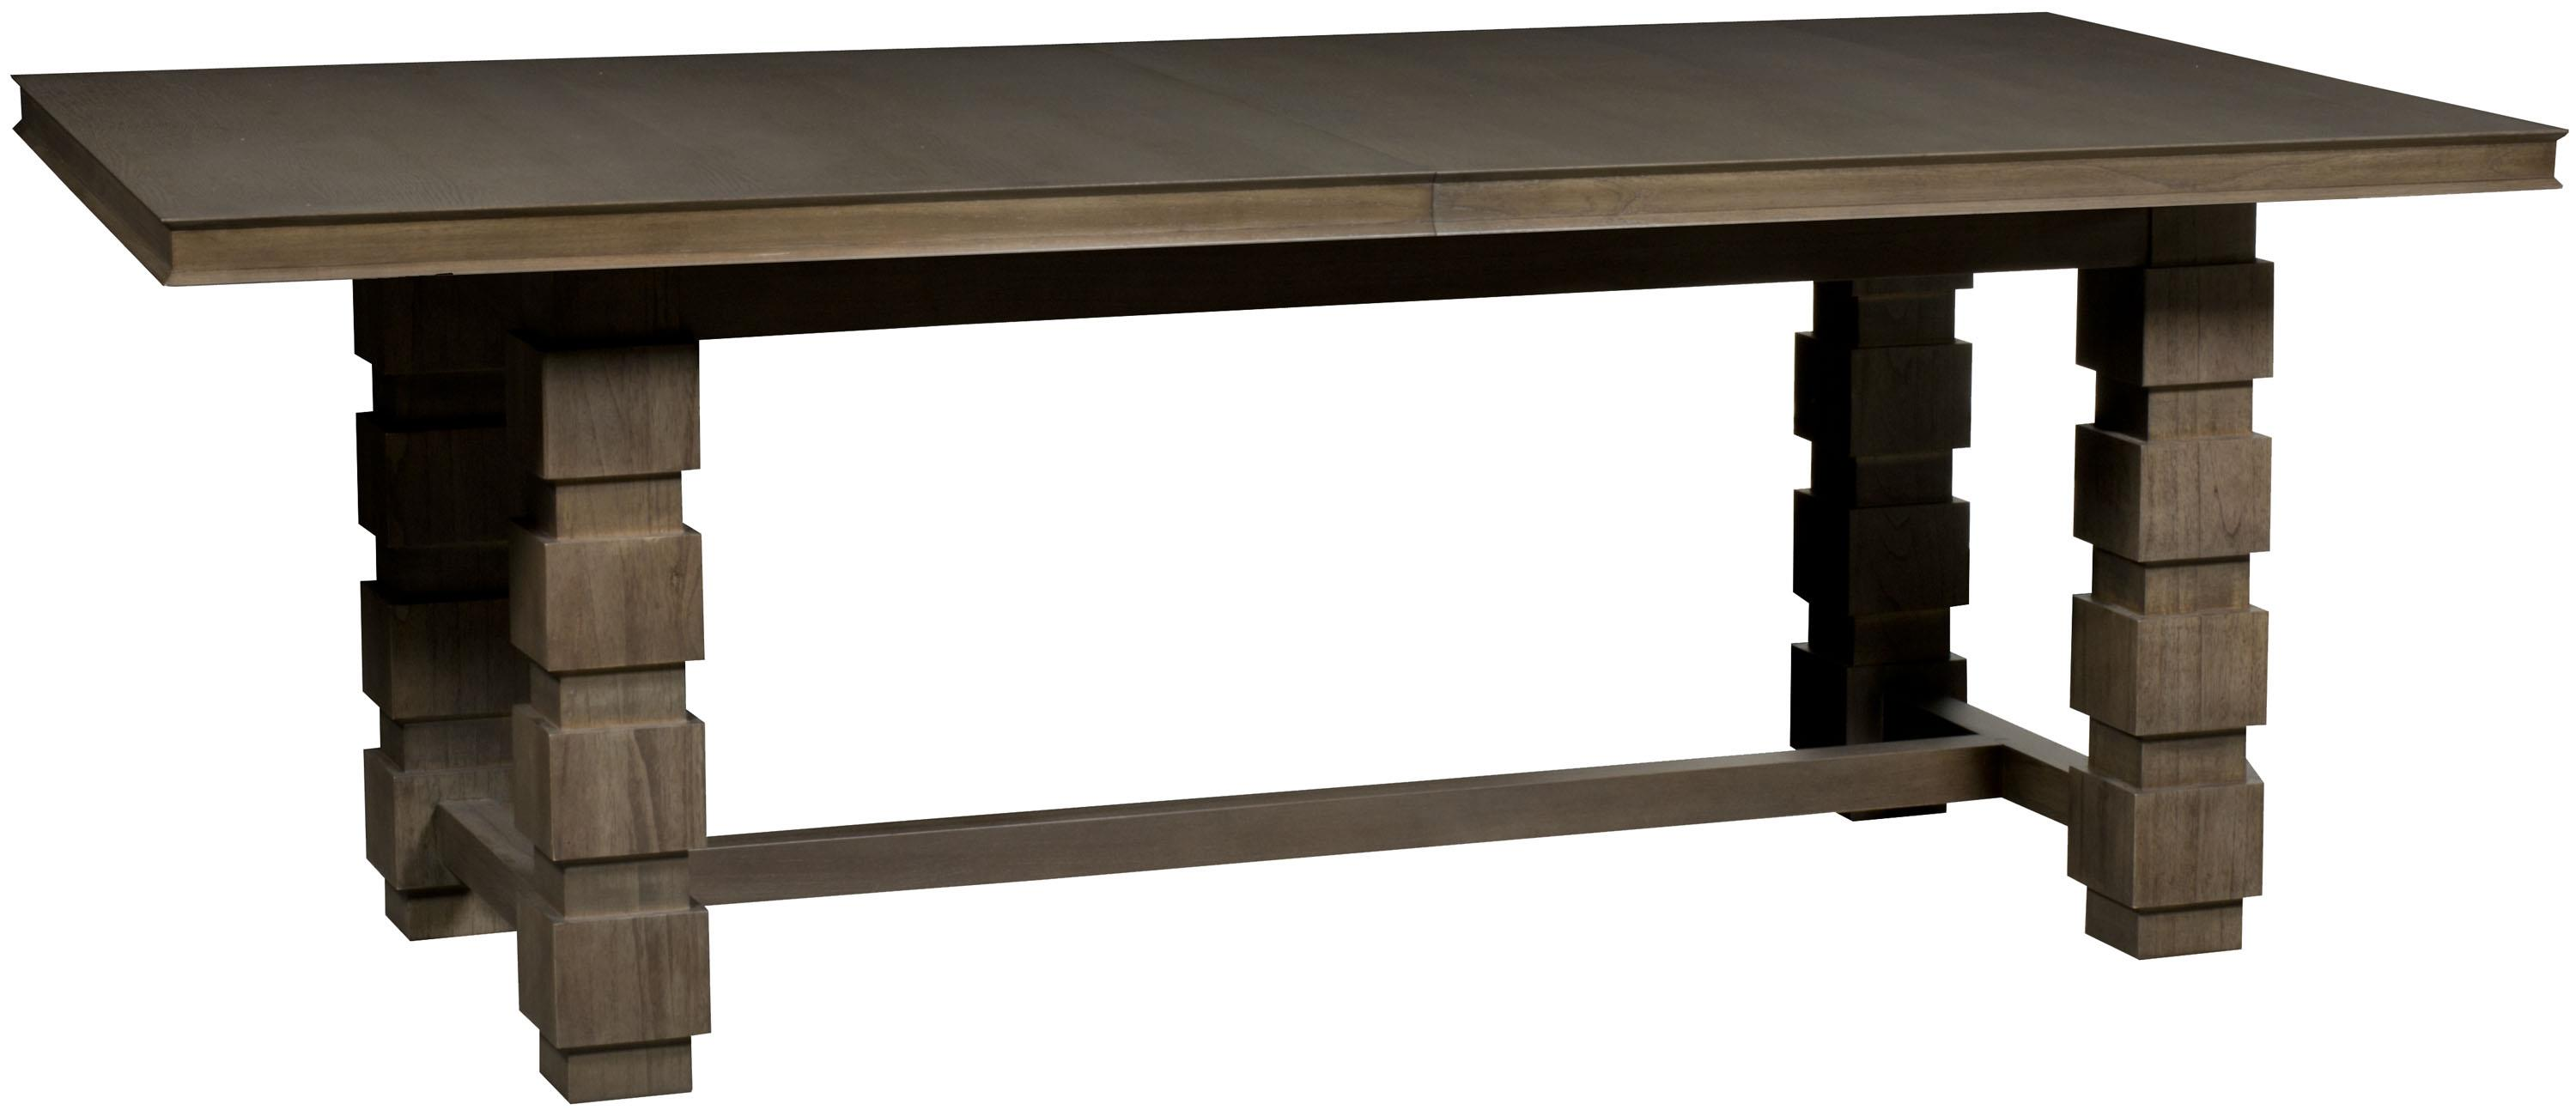 Thom Filicia Home Collection Seneca Dining Table by Vanguard Furniture at Baer's Furniture